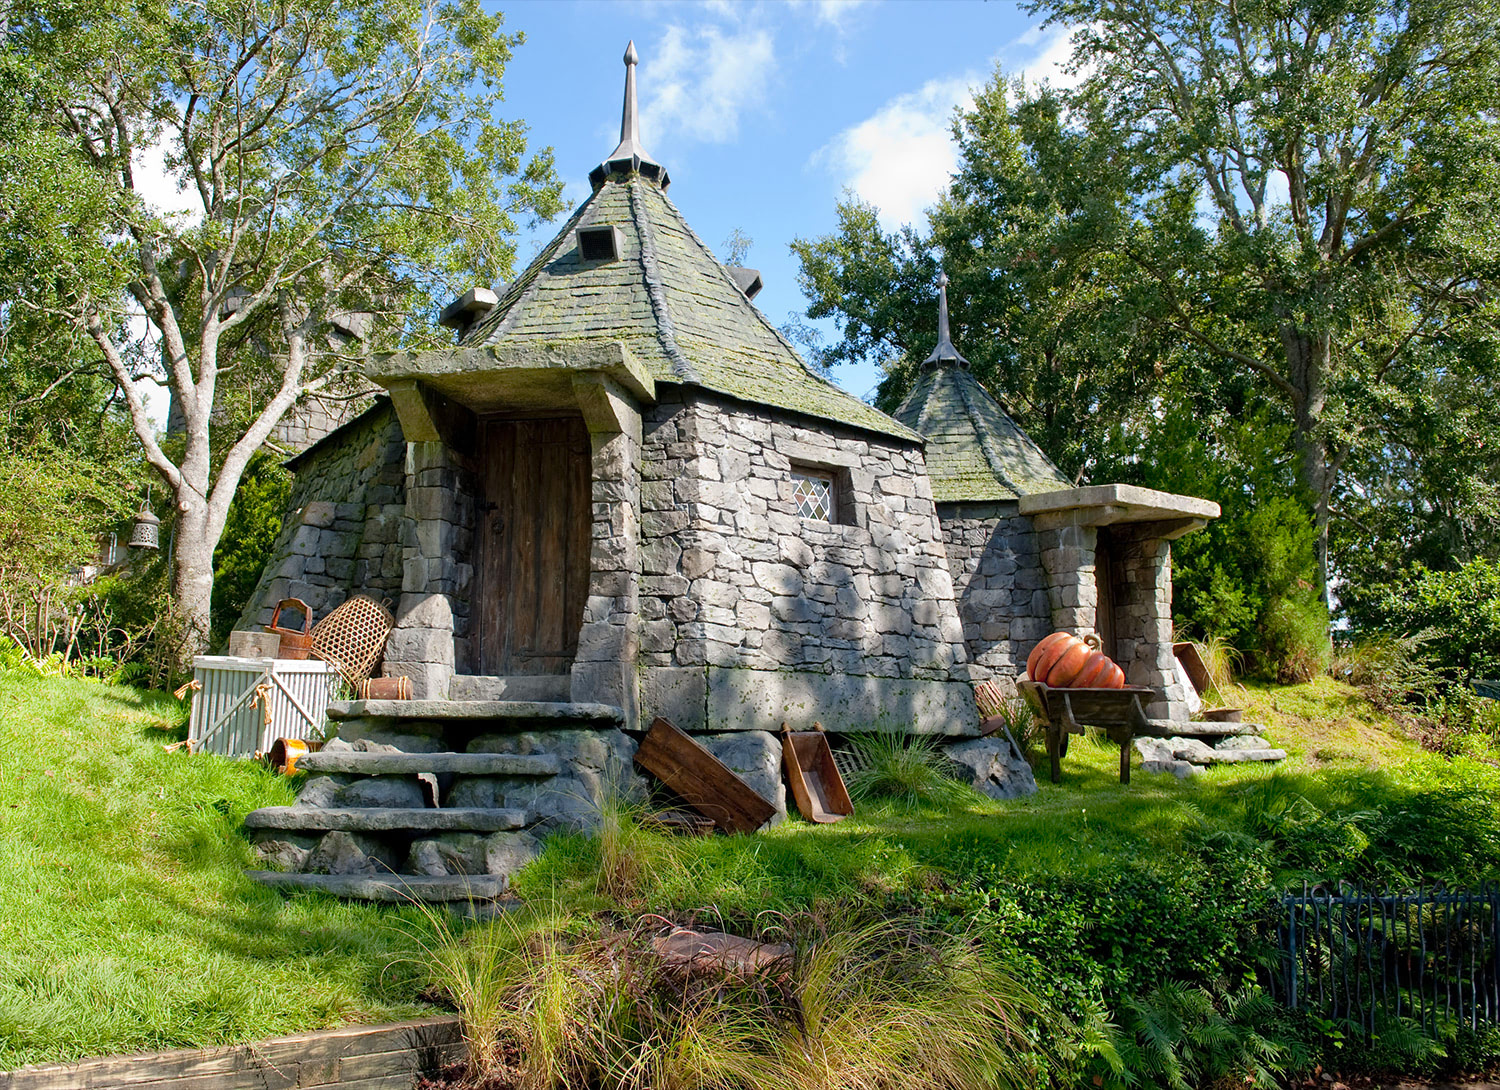 Hagrid's Hut at the 'Harry Potter' theme park